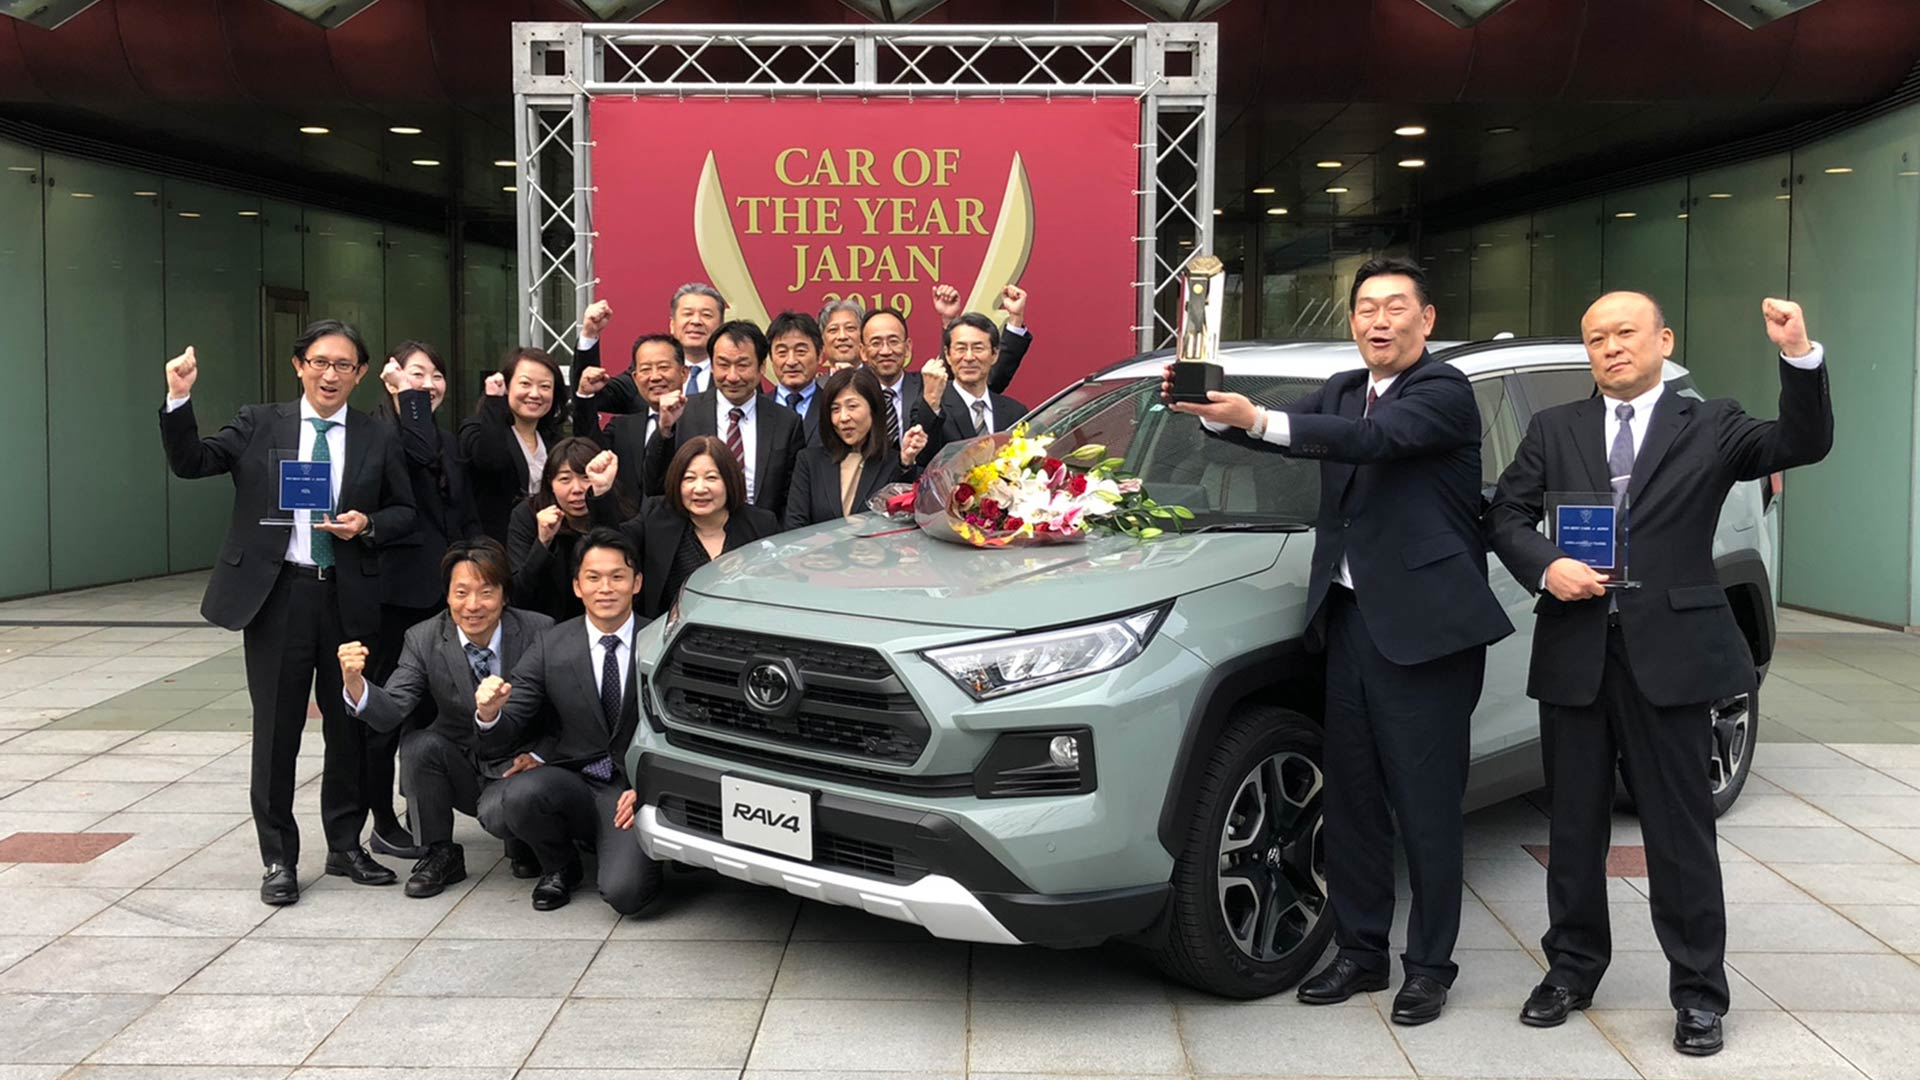 2019 Japan Car of the Year winners